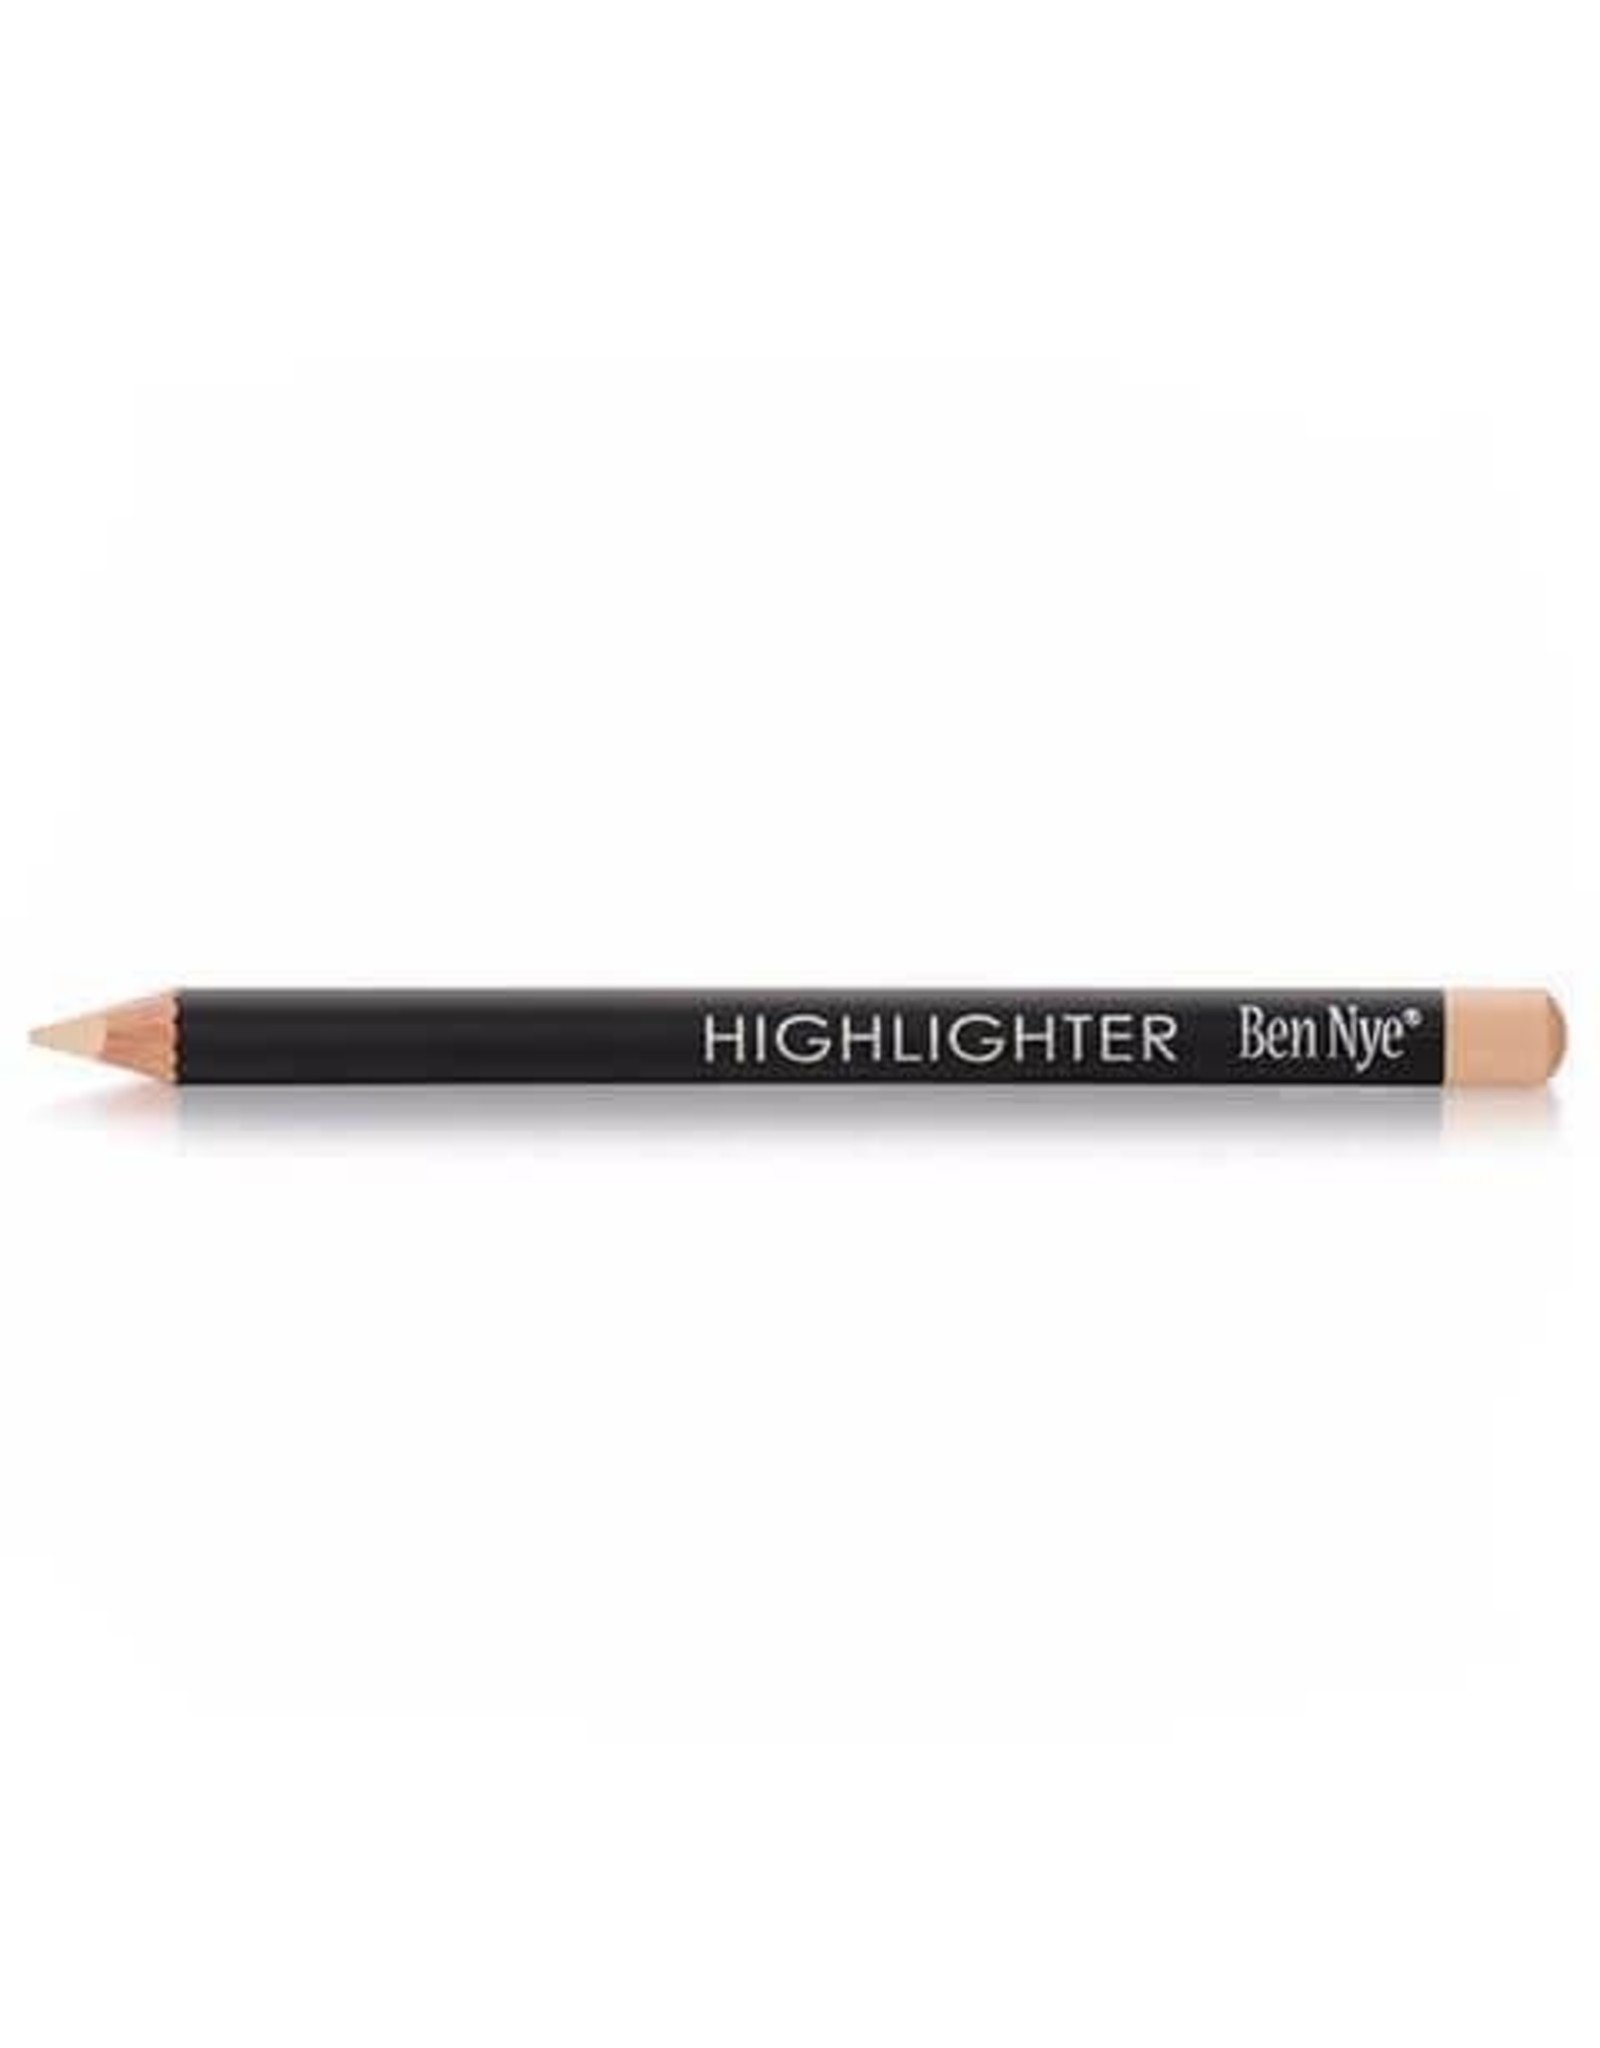 Ben Nye Ben Nye Highlighter Pencil